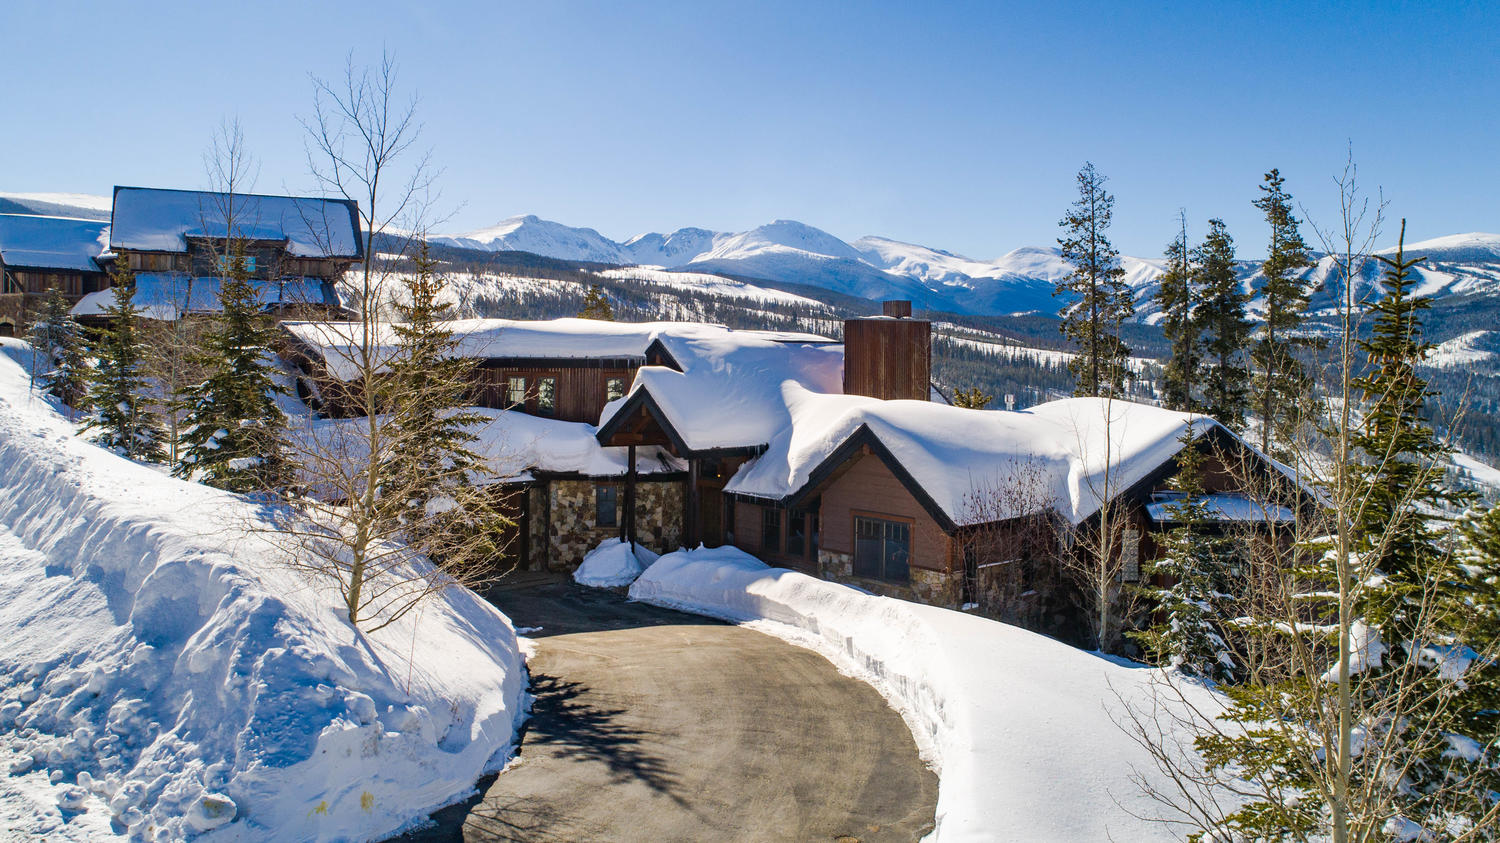 234 Cozens Ridge - Melinda Lee LIV Sothebys Winter Park, CO Fraser, CO